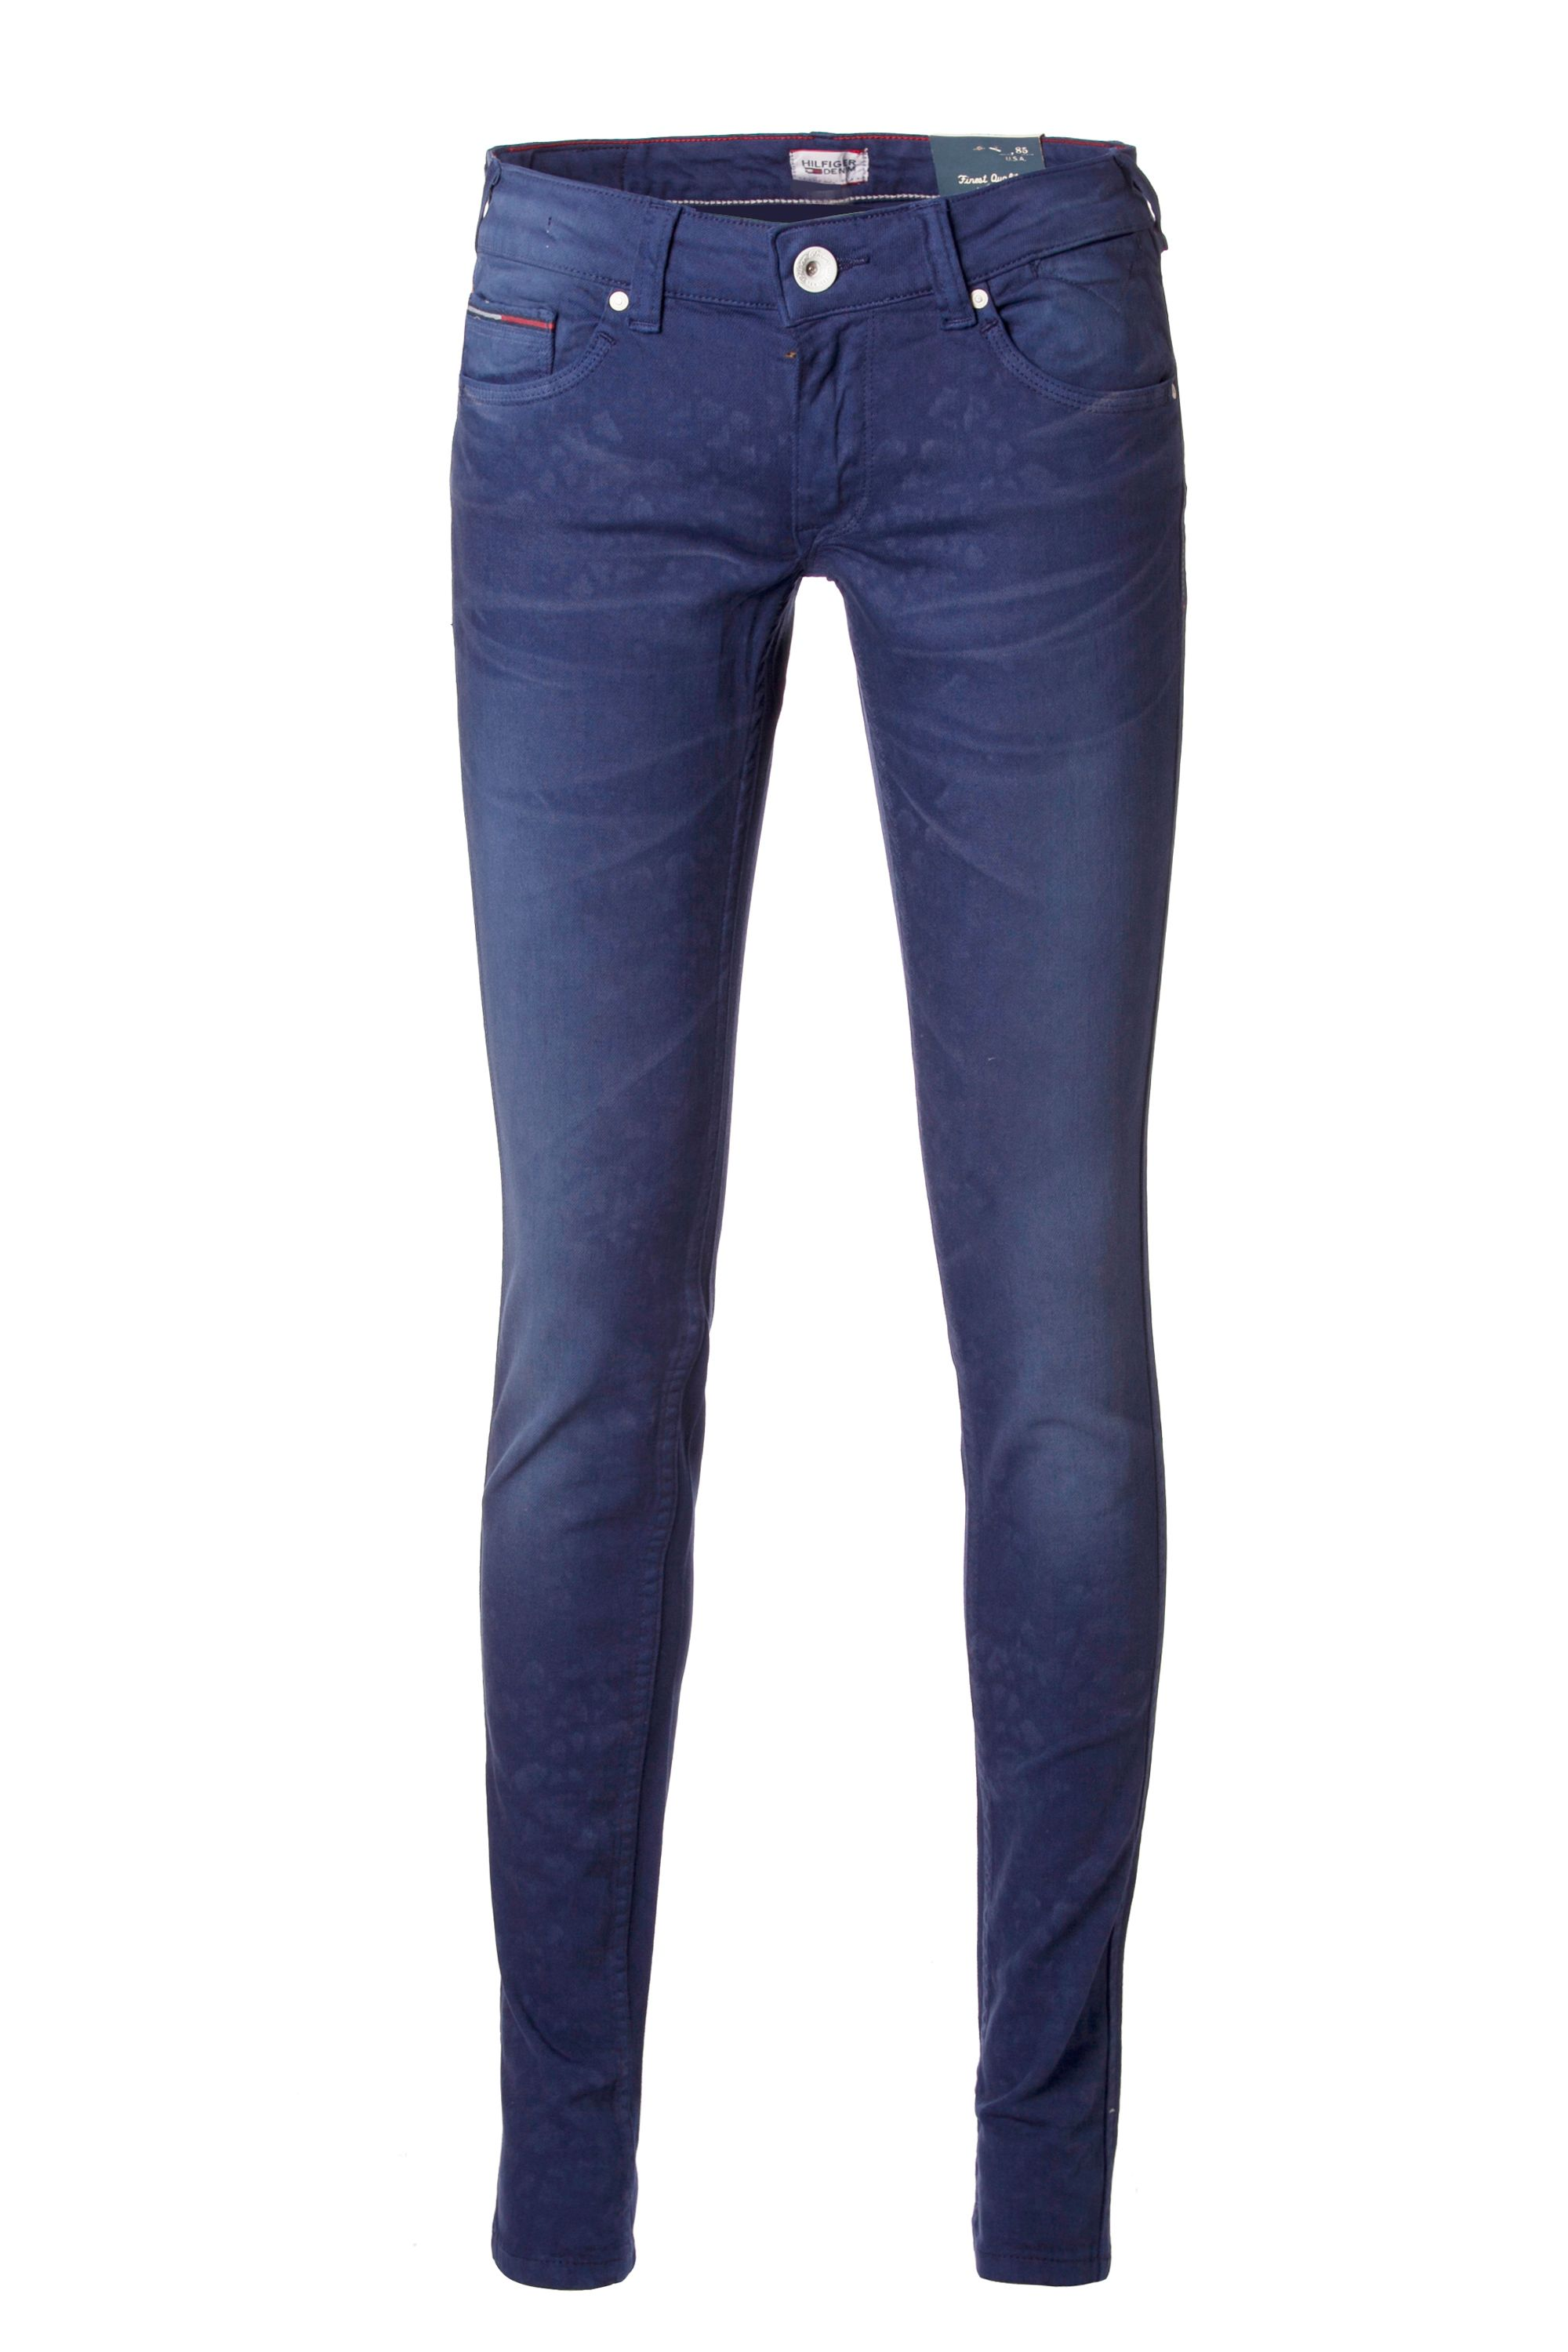 Sophie skinny garment dyed jeans